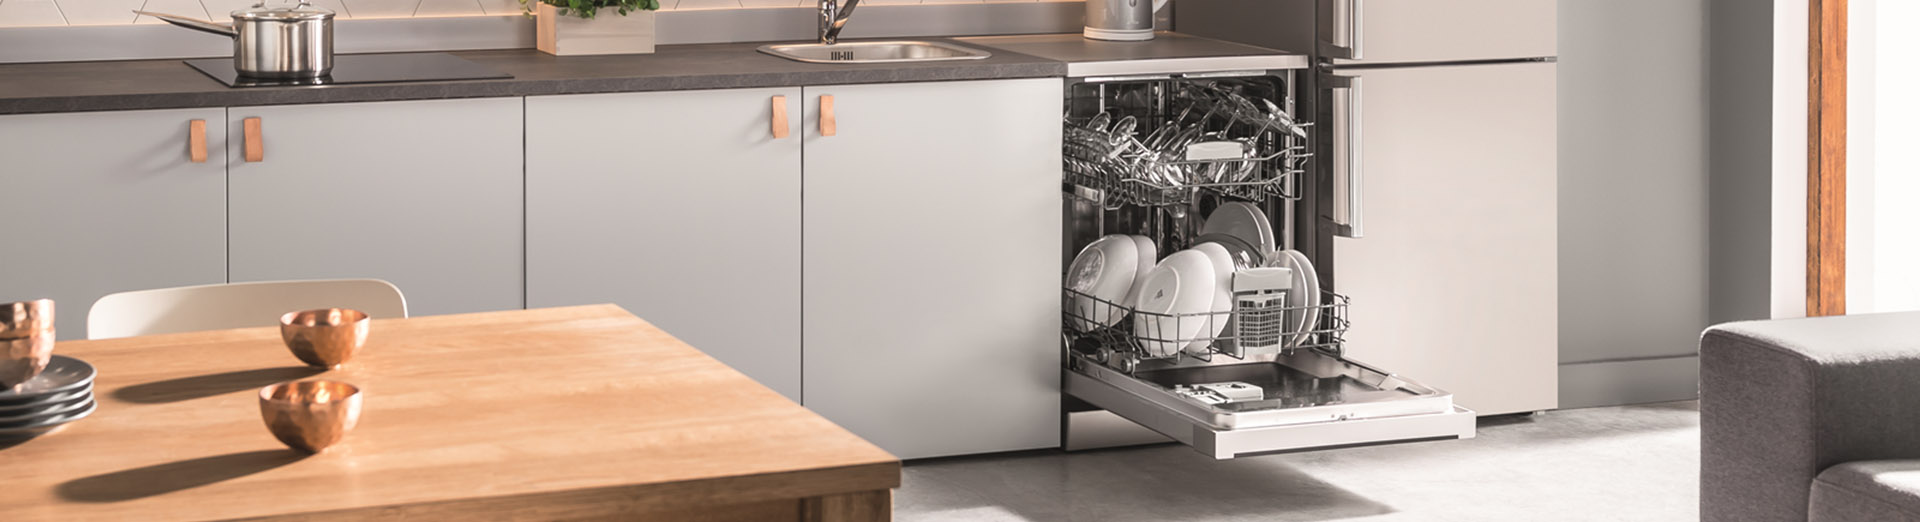 freestanding dishwashers top banner image